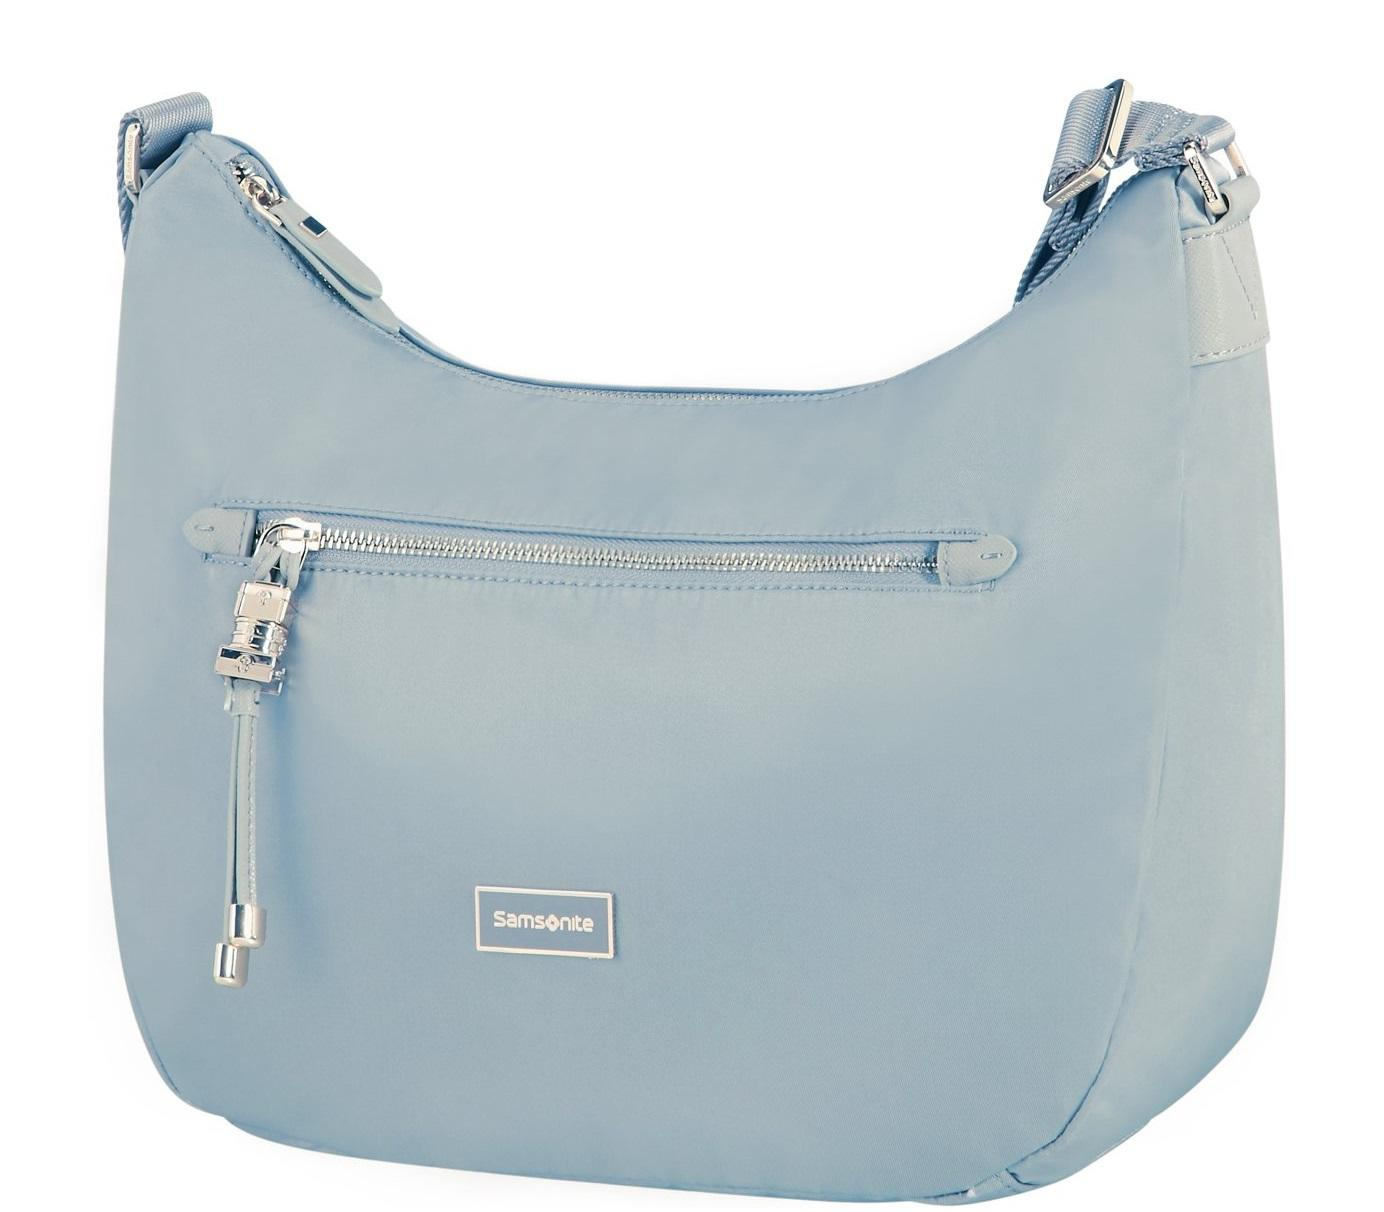 Borse Samsonite.Samsonite Karissa Hobo Borsa A Spalla Candy Blue Acquista A Prezzi Outlet